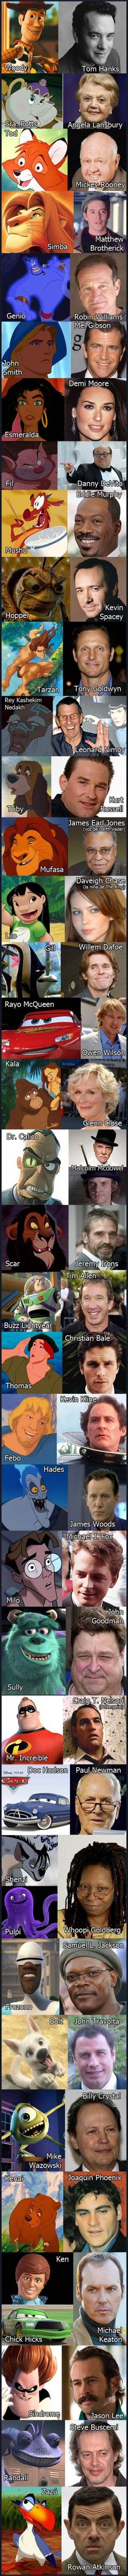 Just because you are a big movie star, does not mean you don't have a wonderful sense of fun. All the stars who are the voice talent behind your favourite animated characters